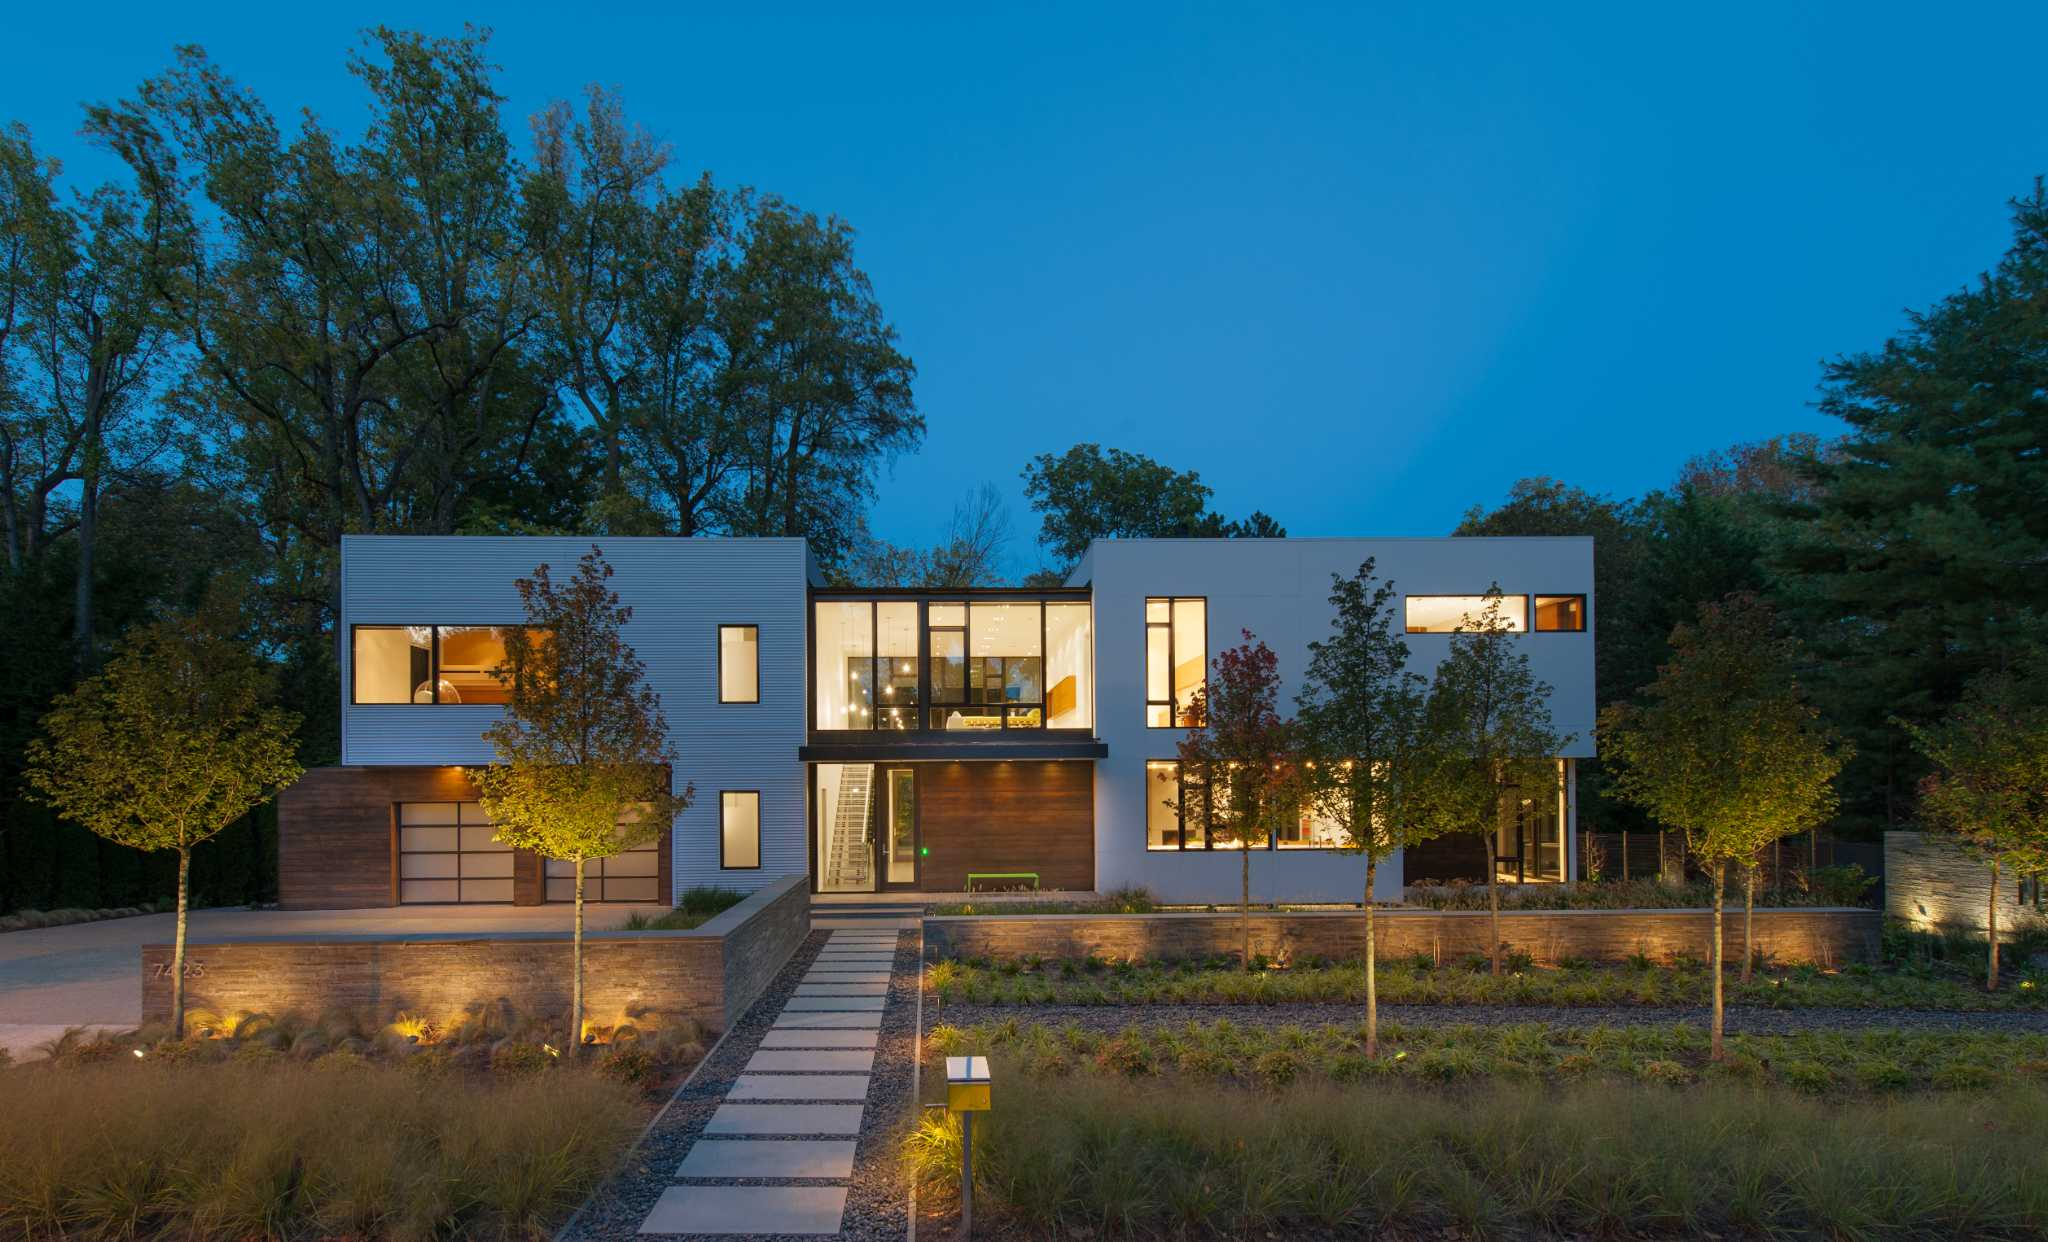 Prefab houses were once the holy grail of design so why arent there more of them